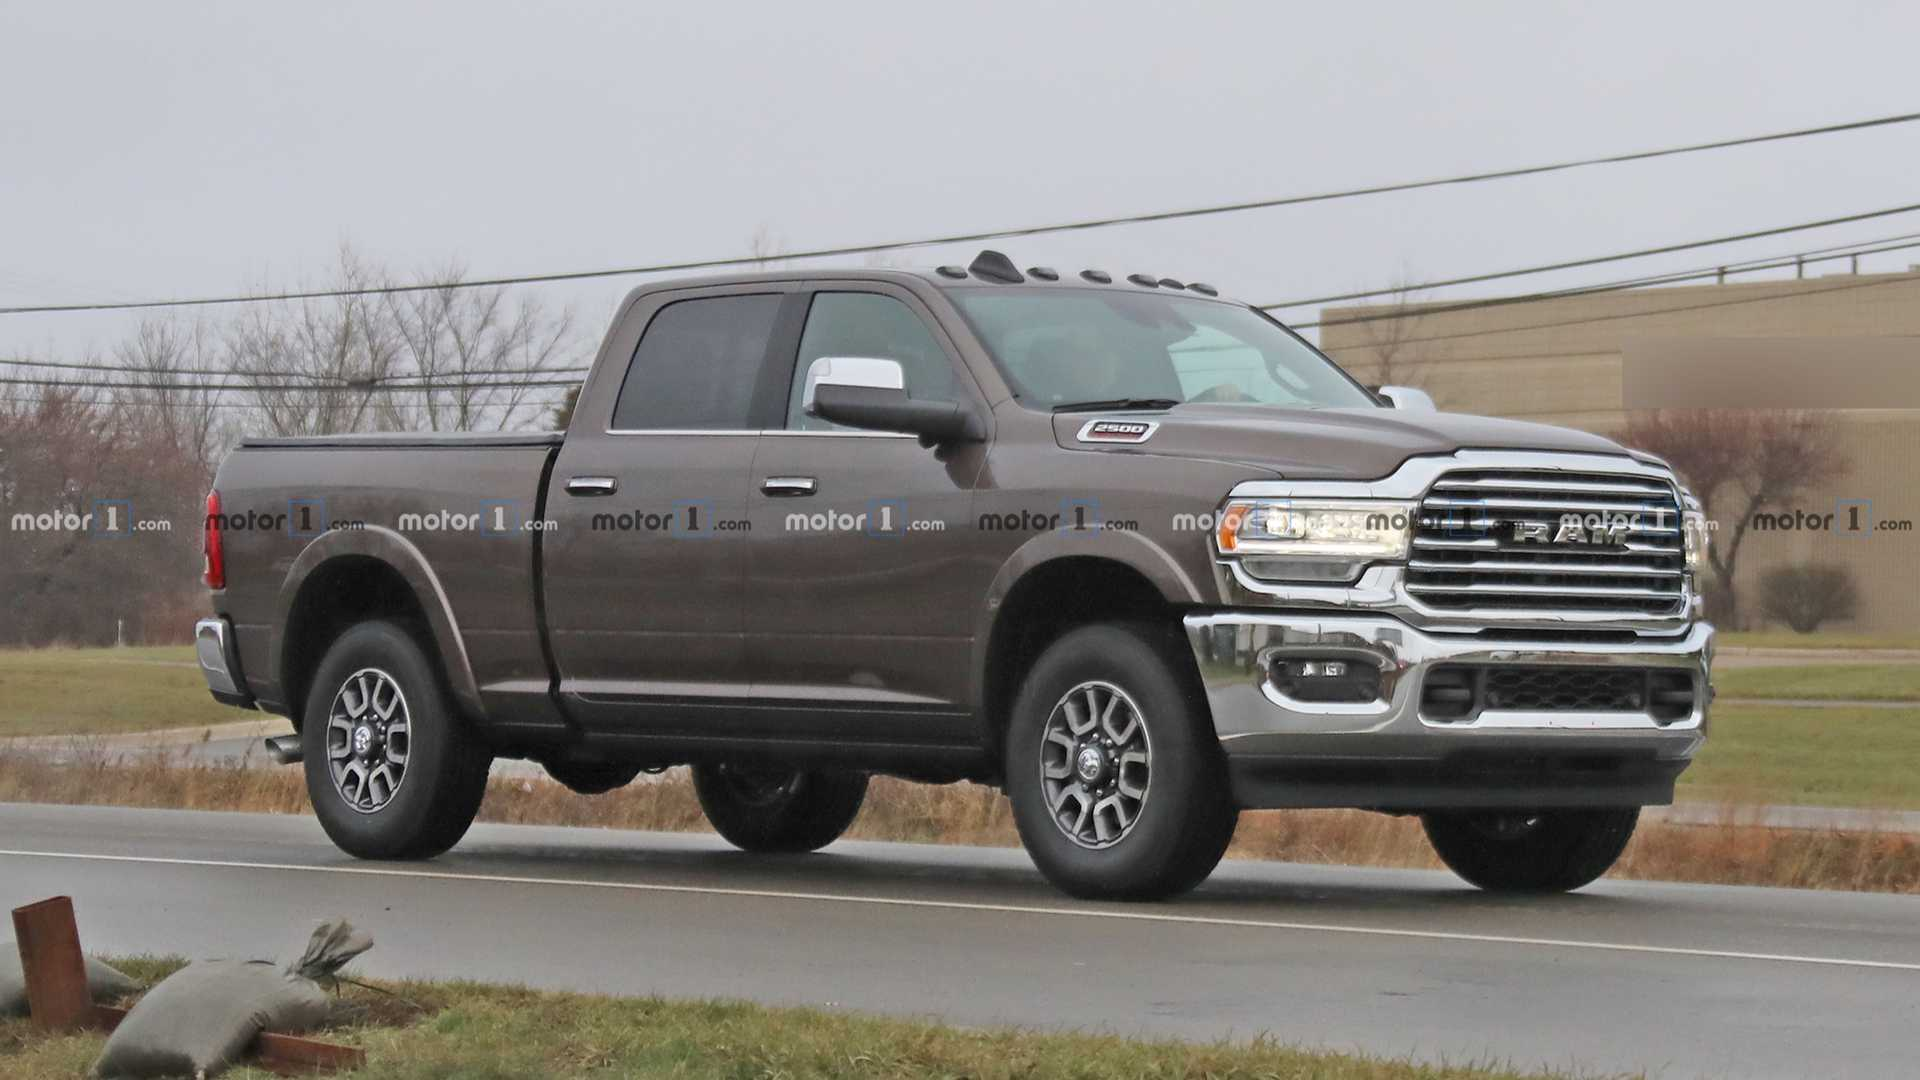 51 New 2020 Dodge Ram Truck Price and Review for 2020 Dodge Ram Truck